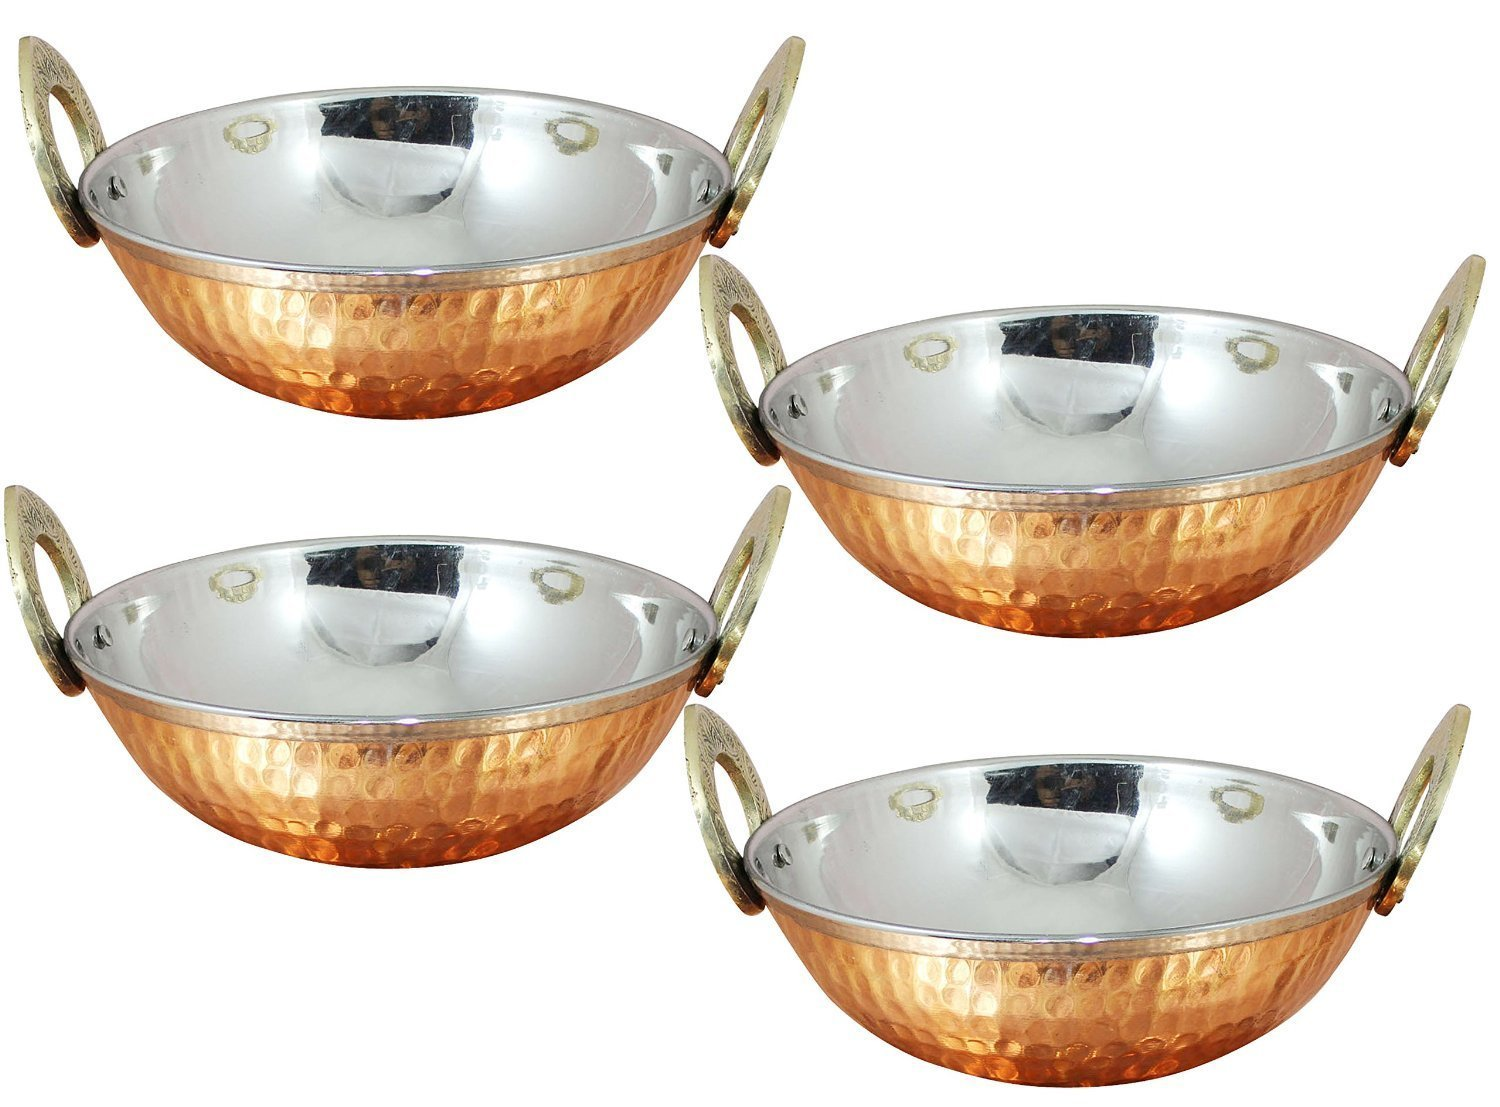 Avs Stores Set of 4, Indian Copper Serveware Karahi Vegetable Dinner Bowl with Solid Brass Handle for Indian Food, Diameter- 13 Cm (5.2 Inches) Avs Stores ® AV_Tableware_Karahi_001_Set_4